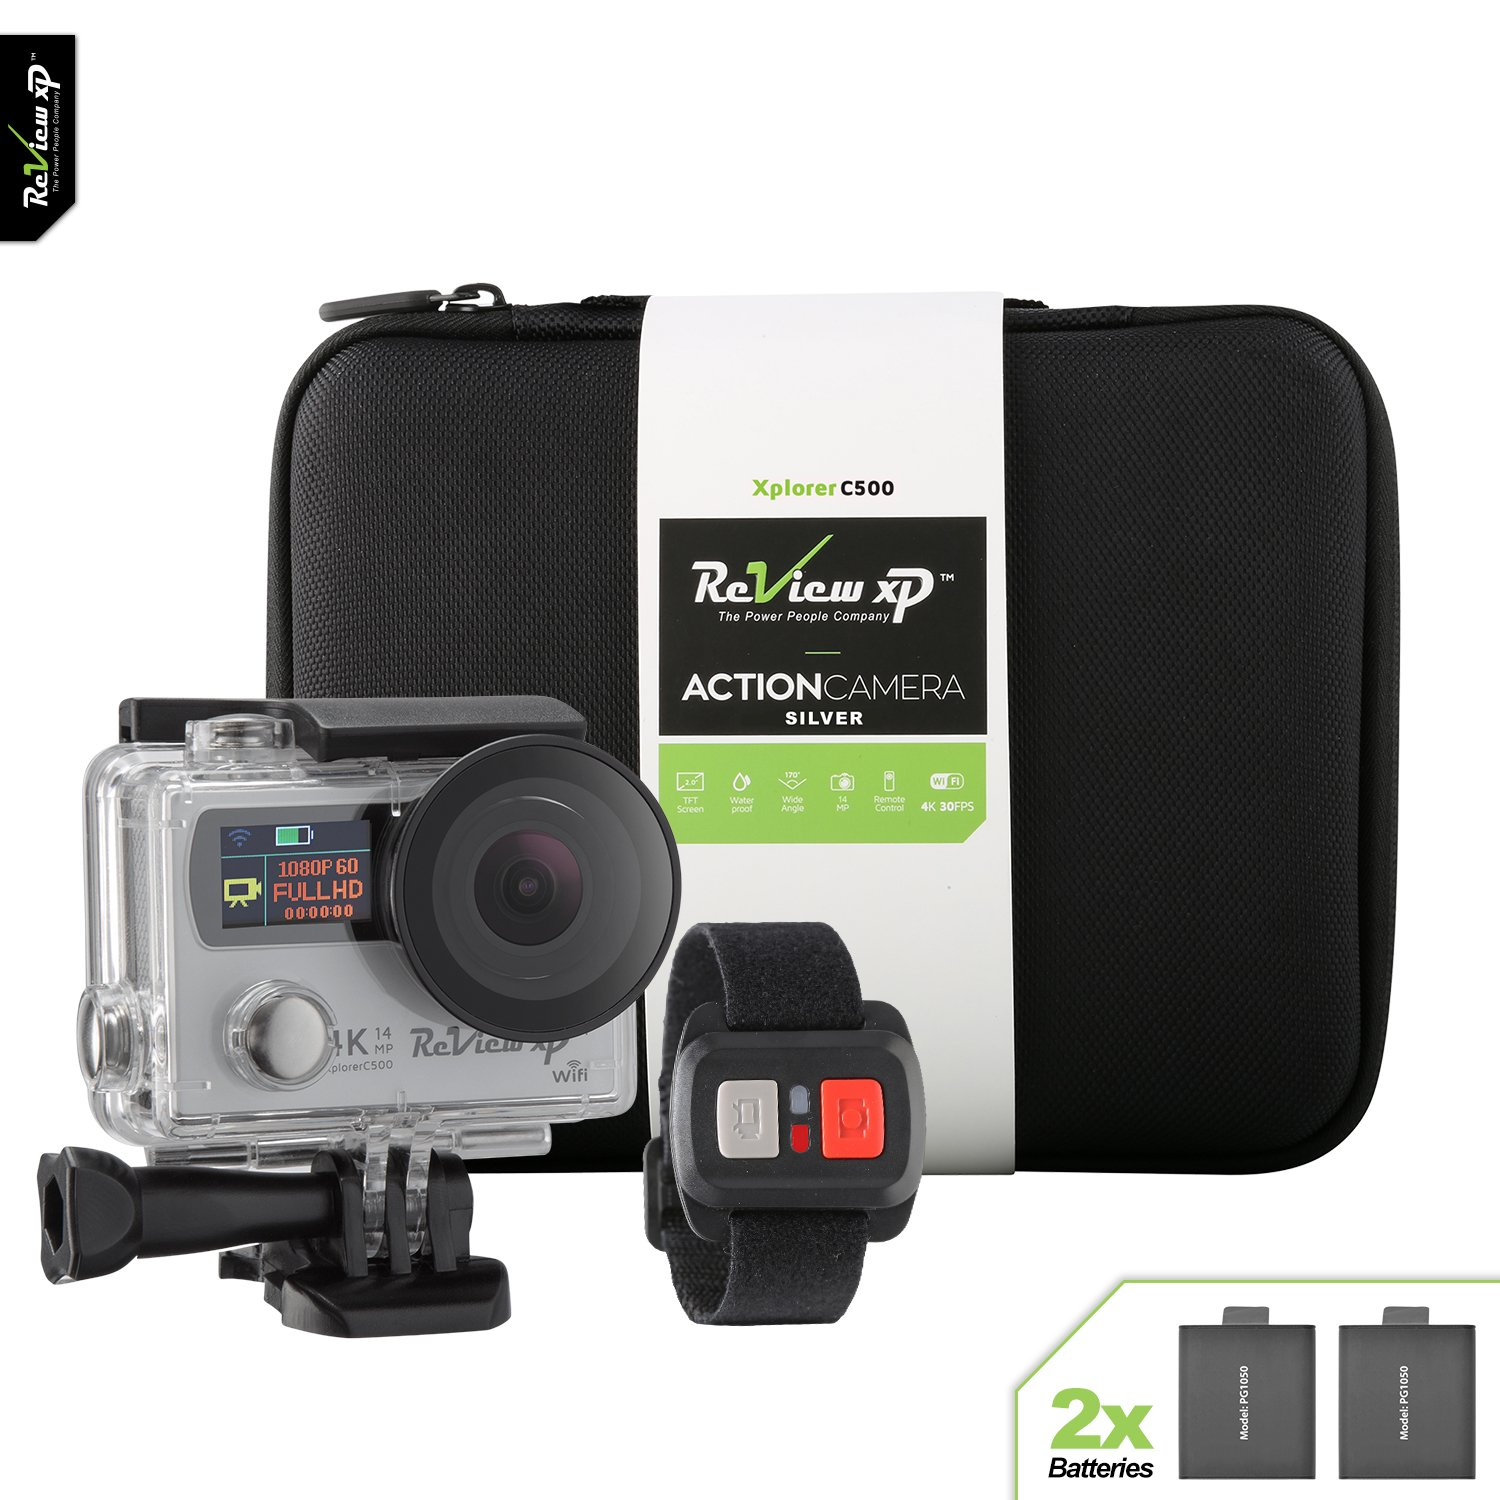 Review XP 4K HD Wi-Fi Waterproof Action Camera 14MP 30fps Sports Video Underwater Camcorder 170° Wide Angle Dual Screen 2 Batteries Accessories Kit Carrying Case Remote Control - Silver